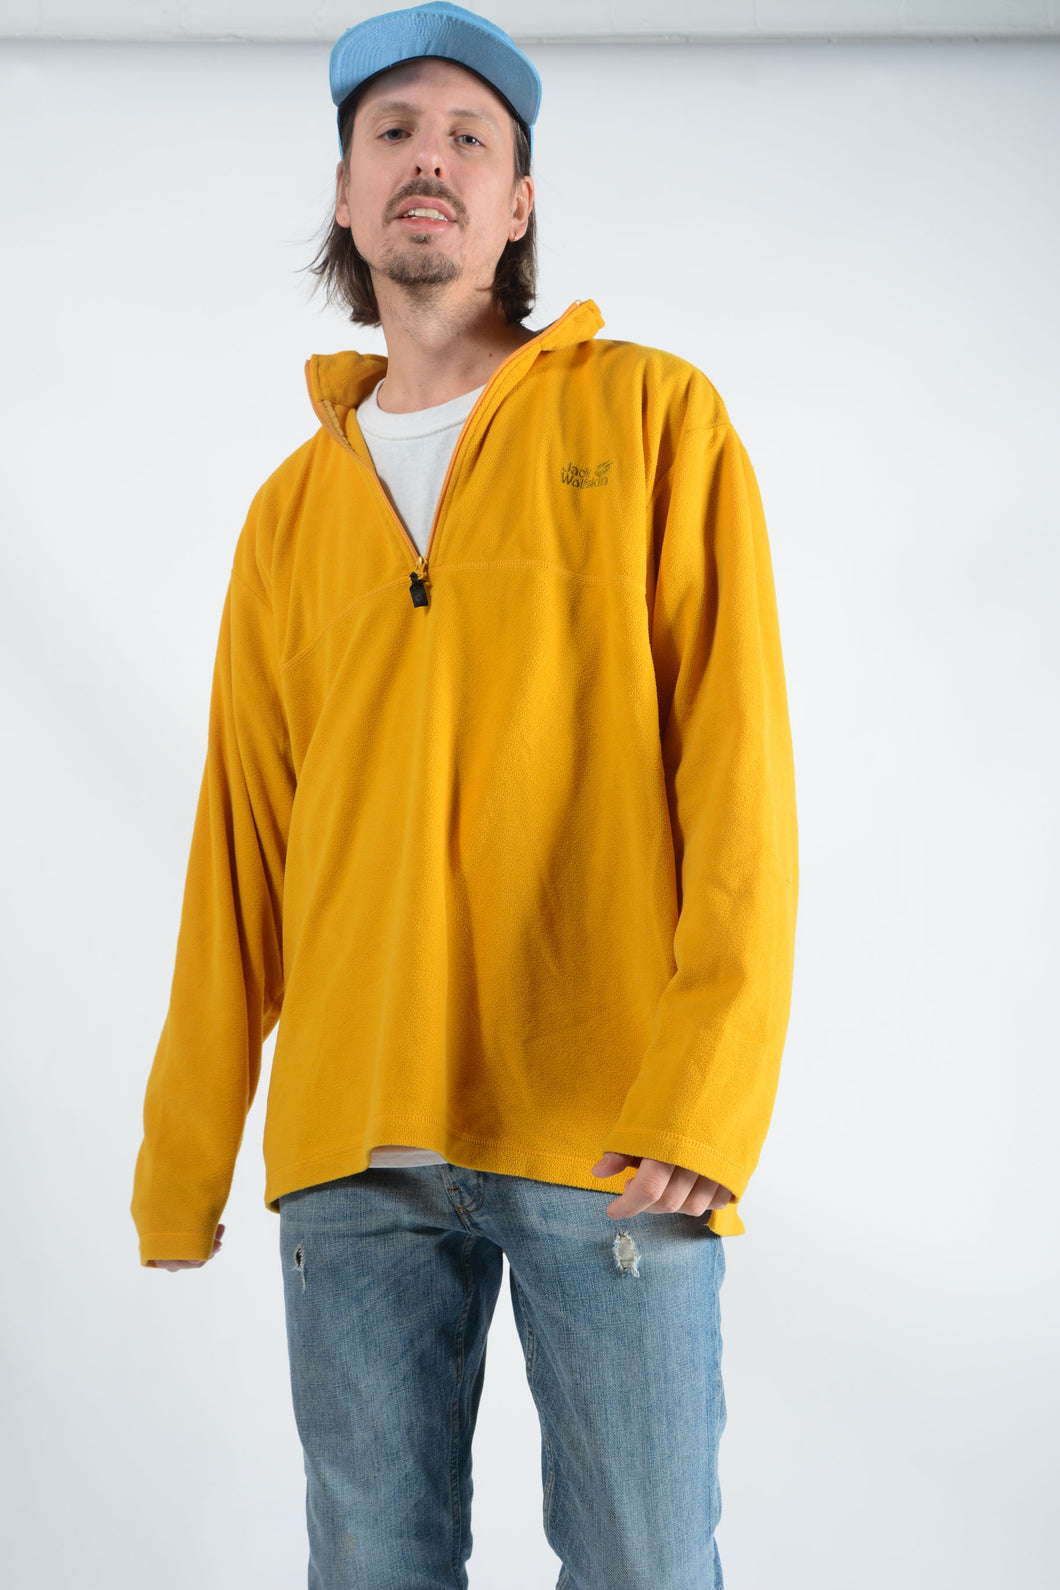 Vintage Jack Wolfskin 1/4 Zip Fleece in Yellow - 3XL